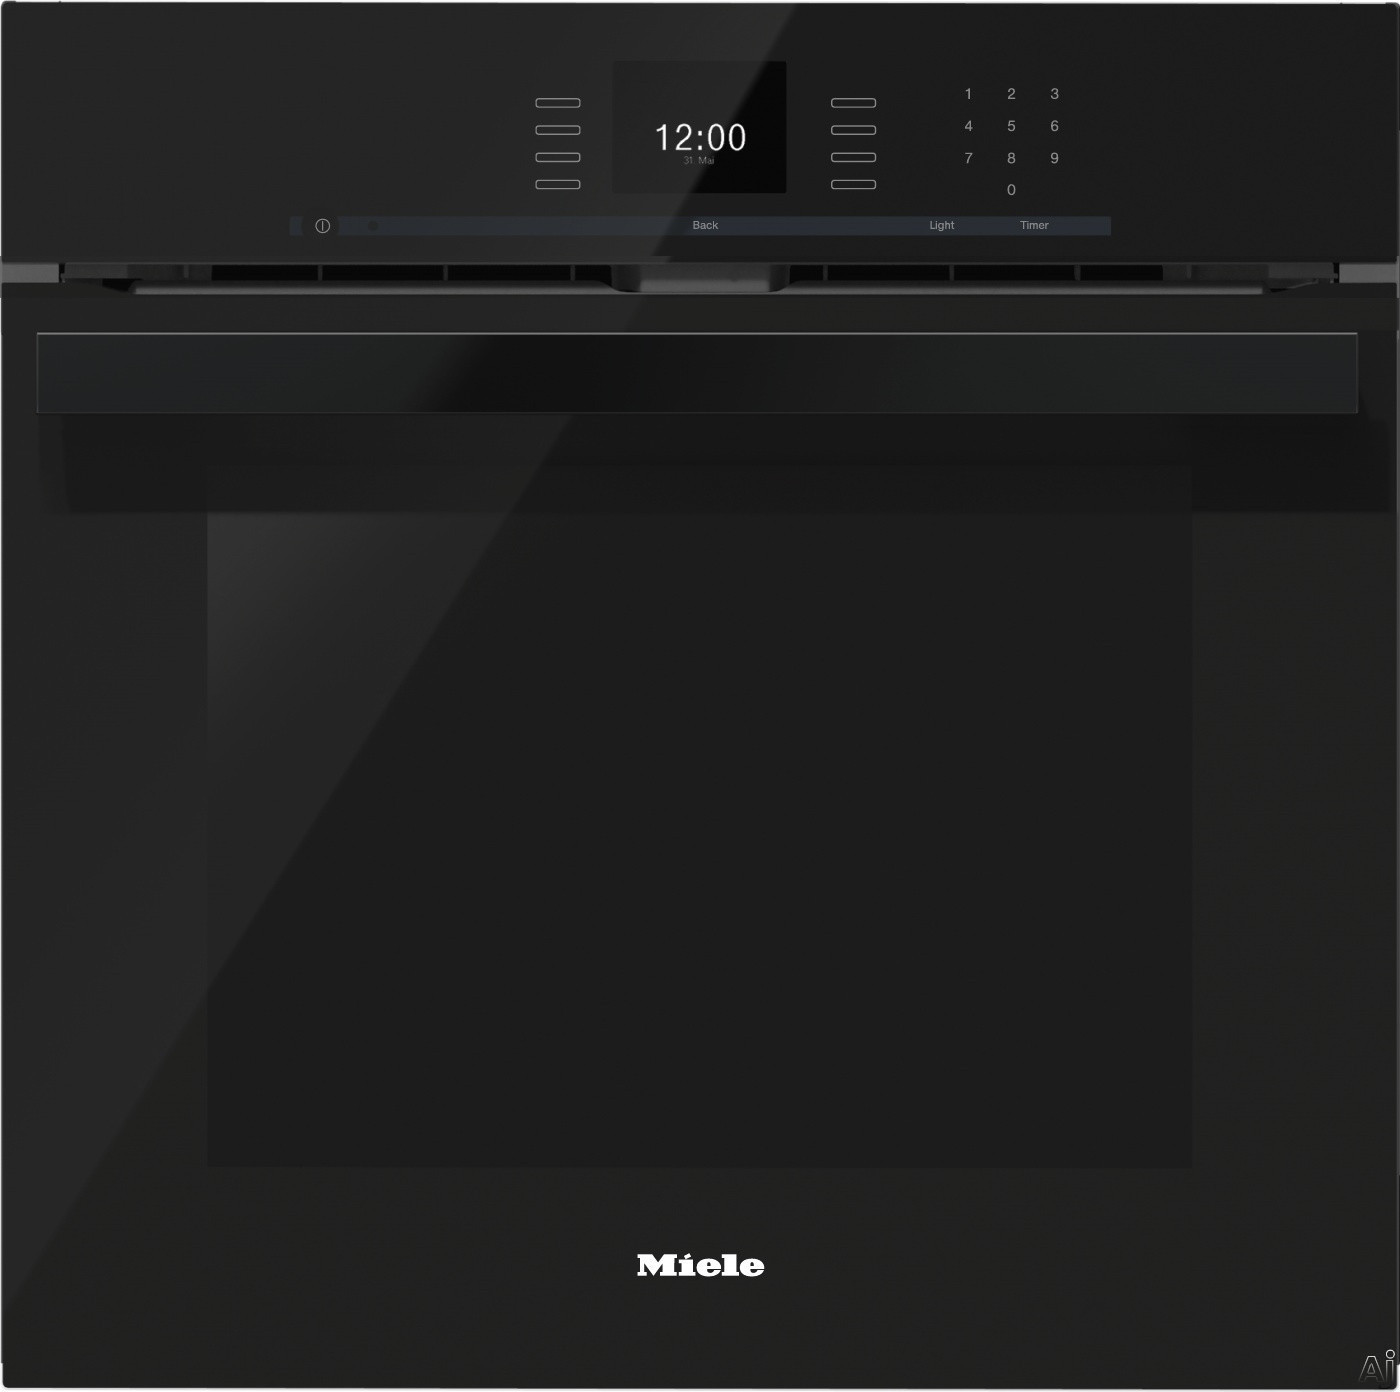 Miele PureLine SensorTronic Series H6660BPOBSW 24 Inch Single Electric Wall Oven with Convection Cooking, Self Cleaning Mode, SensorTronic Controls, MasterChef Programs, Temperature Probe, PerfectClea